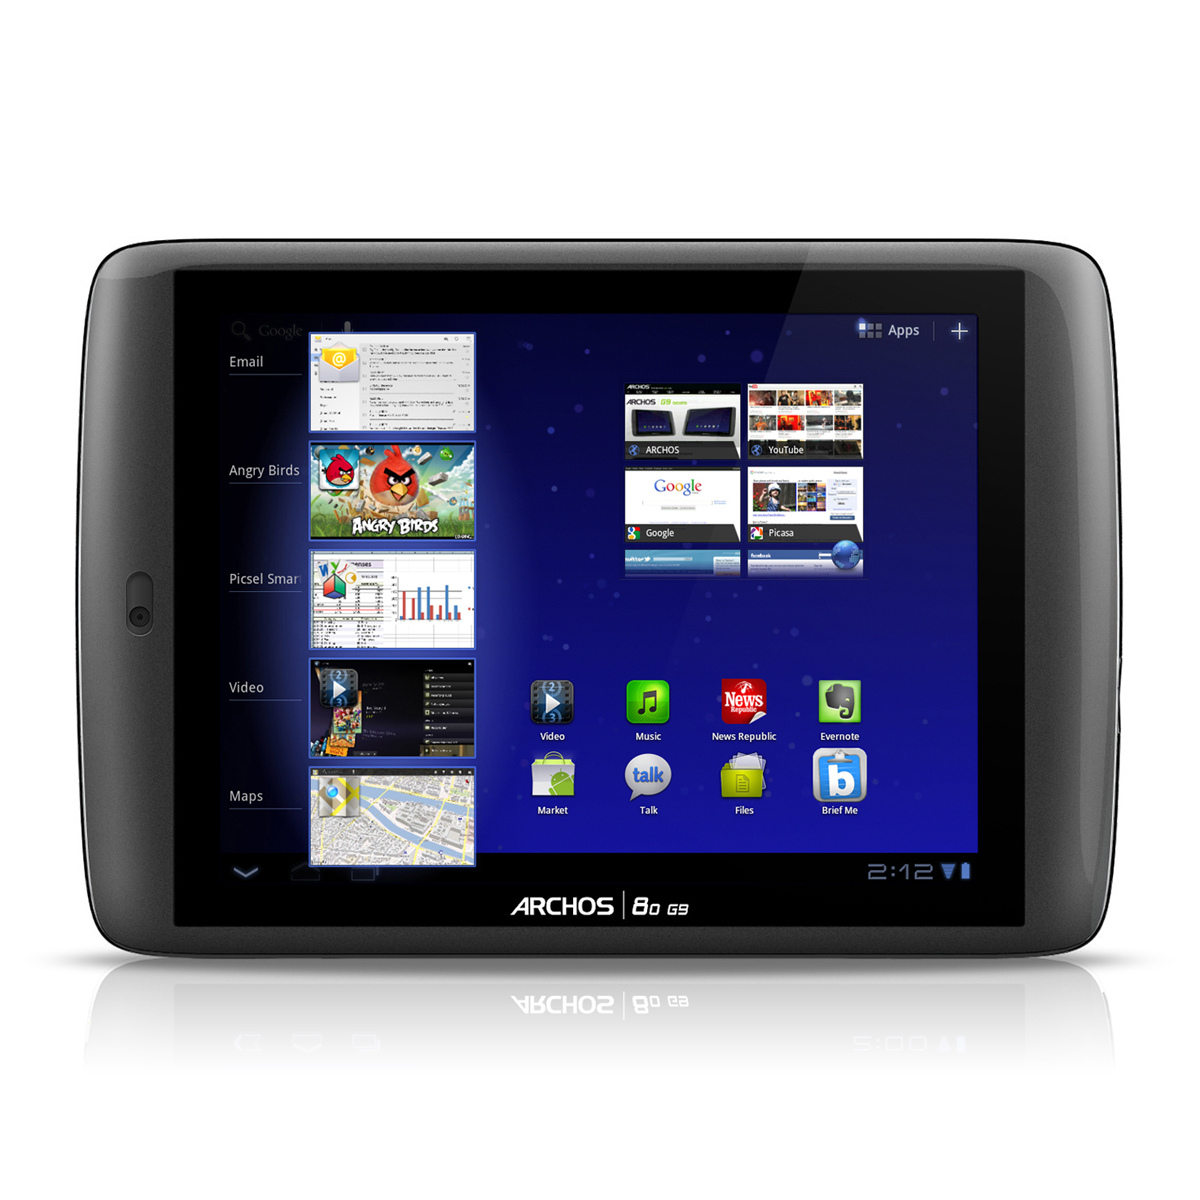 """Tablette tactile Archos 80 G9 Tablette Internet - OMAP 4 Smart multi-core 1 GHz 8 Go 8"""" LCD tactile Wi-Fi N/Bluetooth Webcam Android 3.2"""